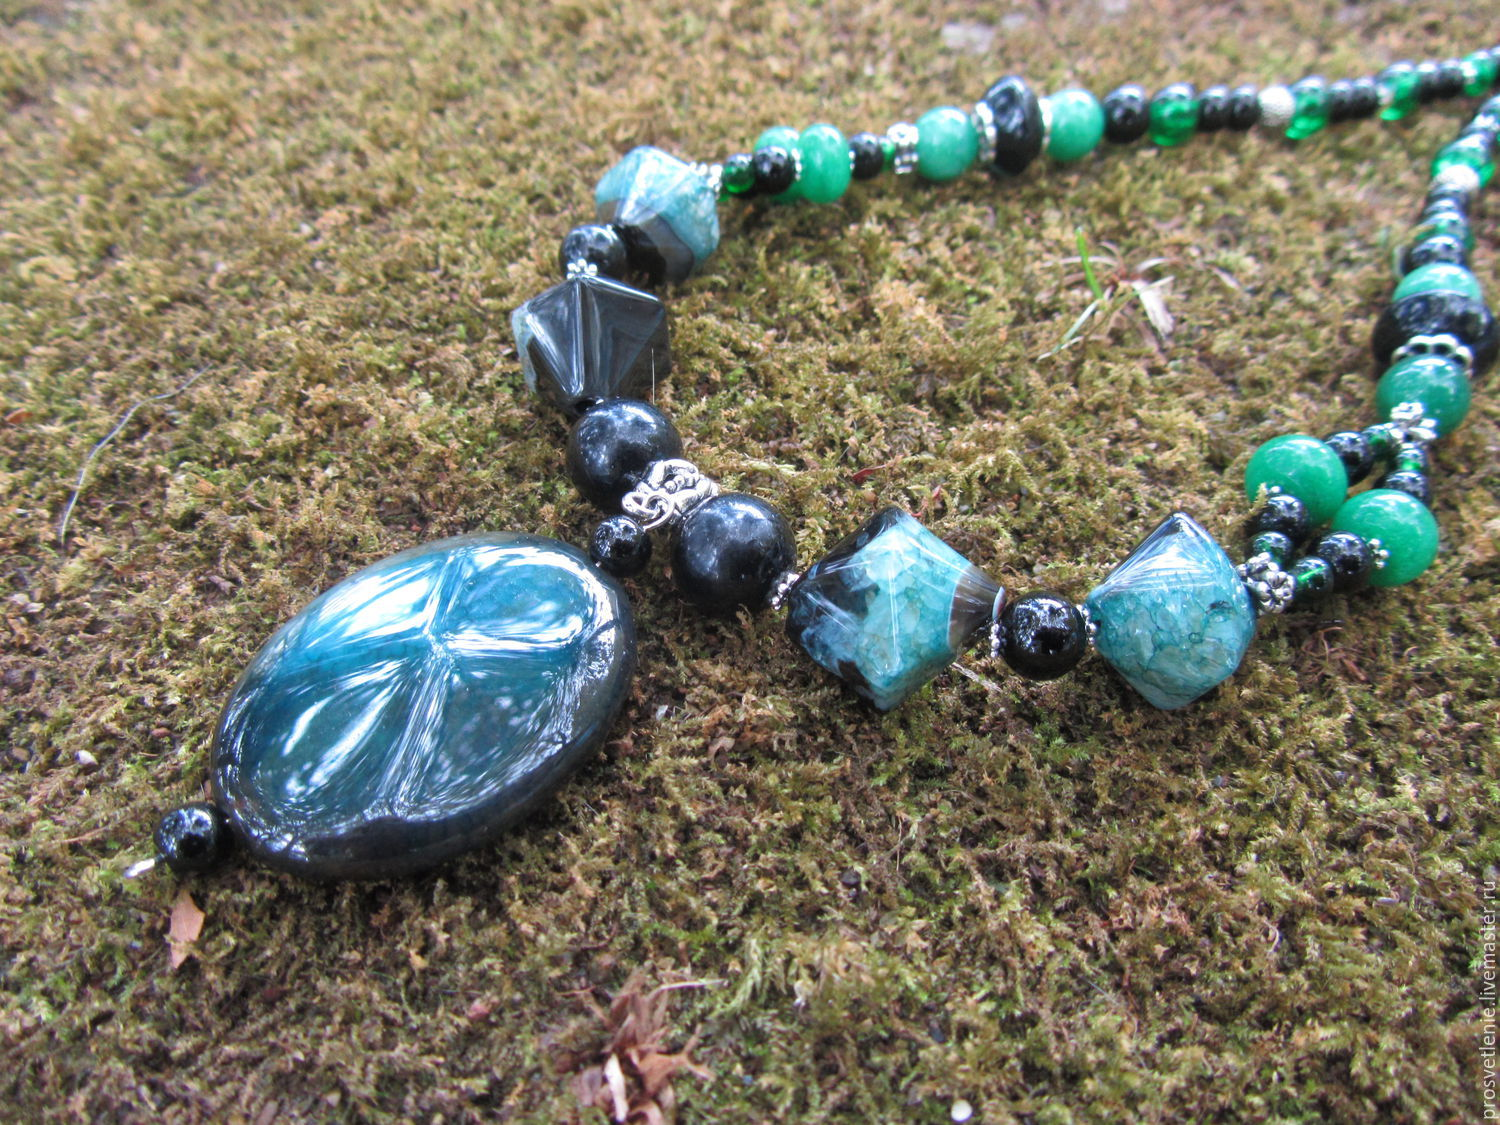 Spectacular decoration handmade necklace made of natural stones, charming decoration necklace is made of natural stones, elegant necklace jewelry made of stones, the necklace decoration of natural sto